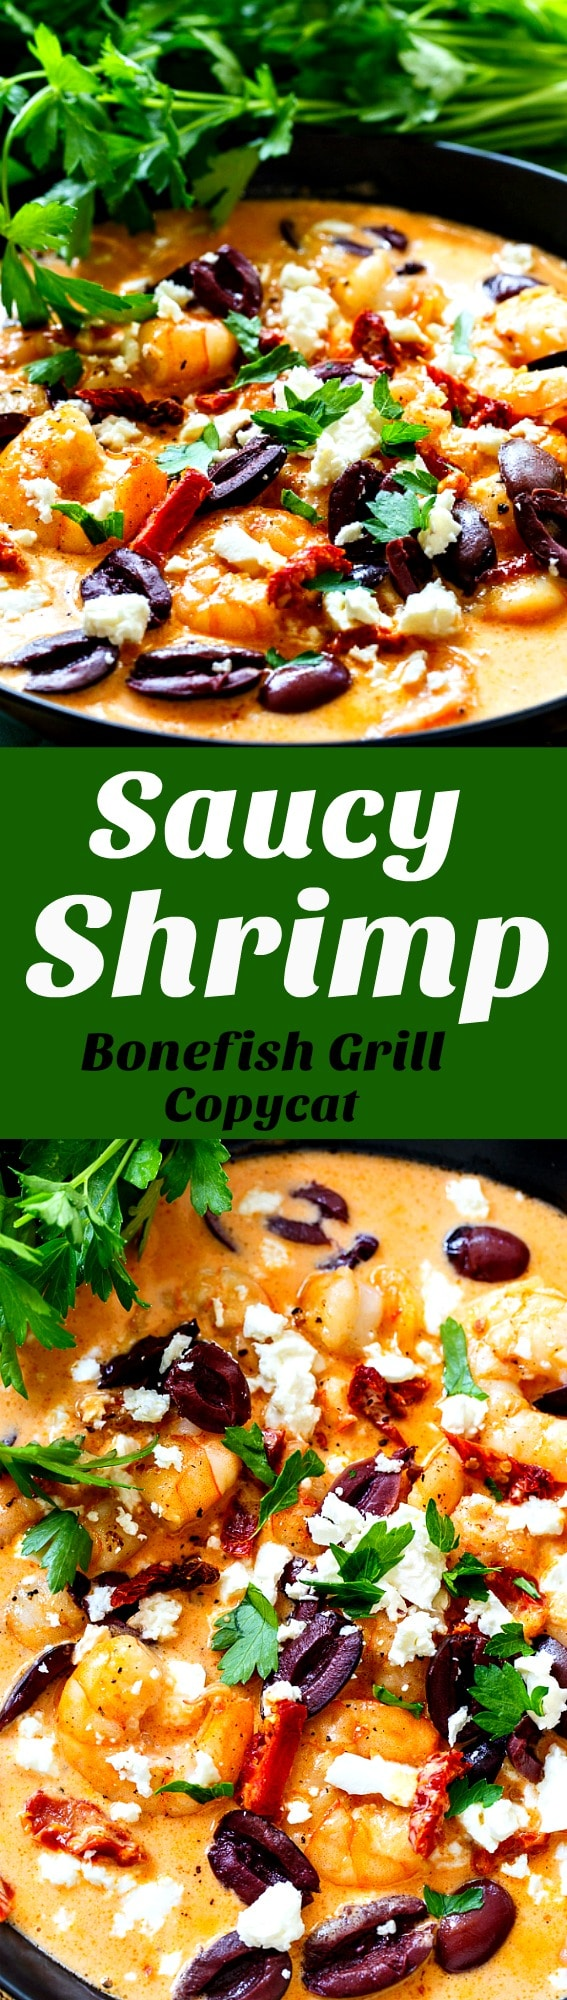 Saucy Shrimp- Bonefish Grill copycat. One of my favorite appetizers!